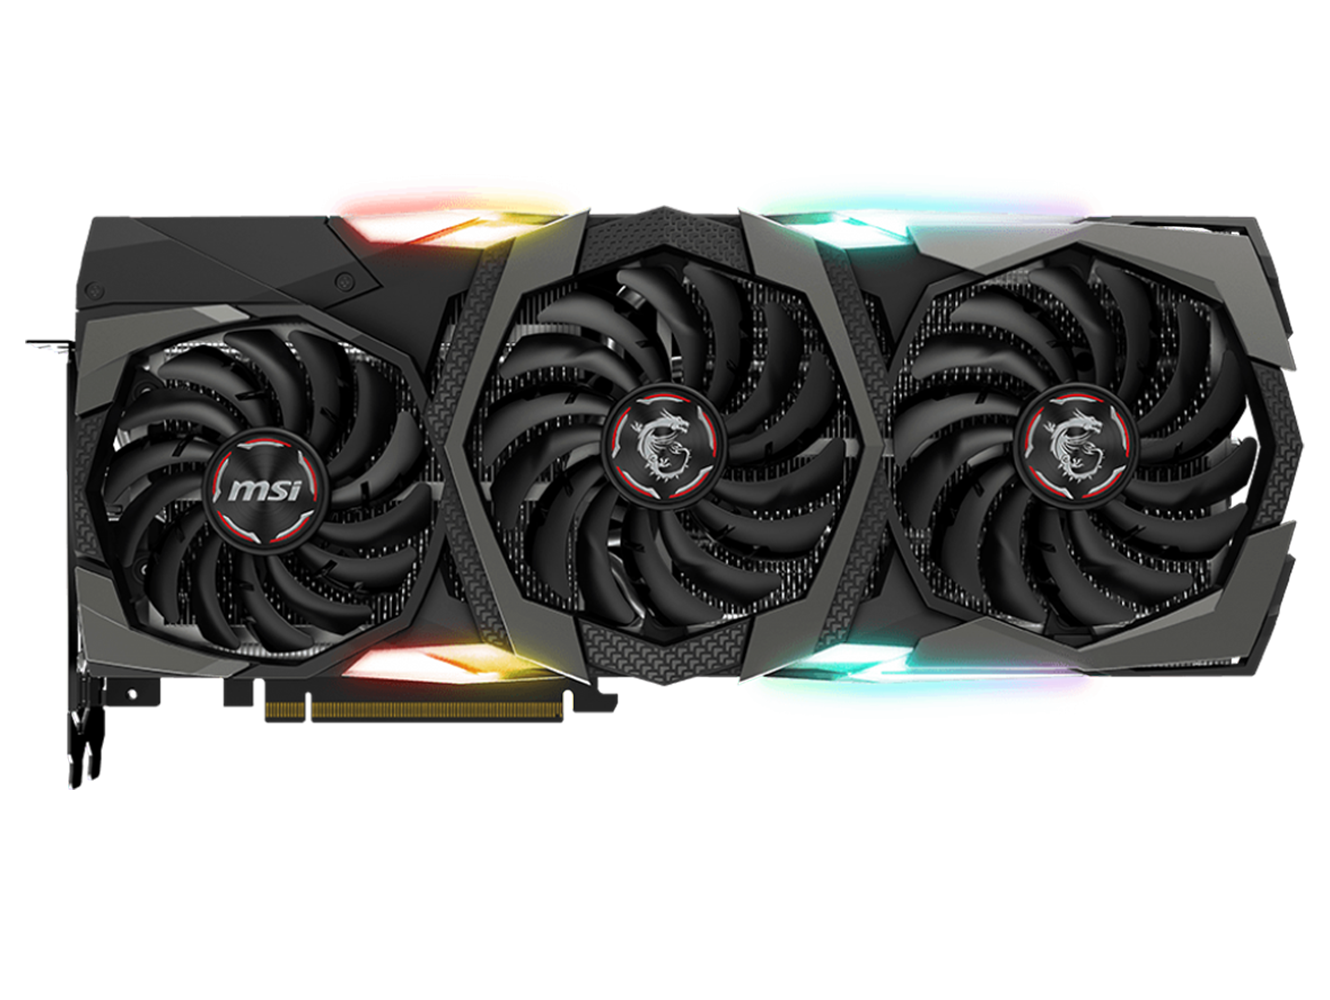 MSI RTX 2080 Ti GZ TRIO 11GB